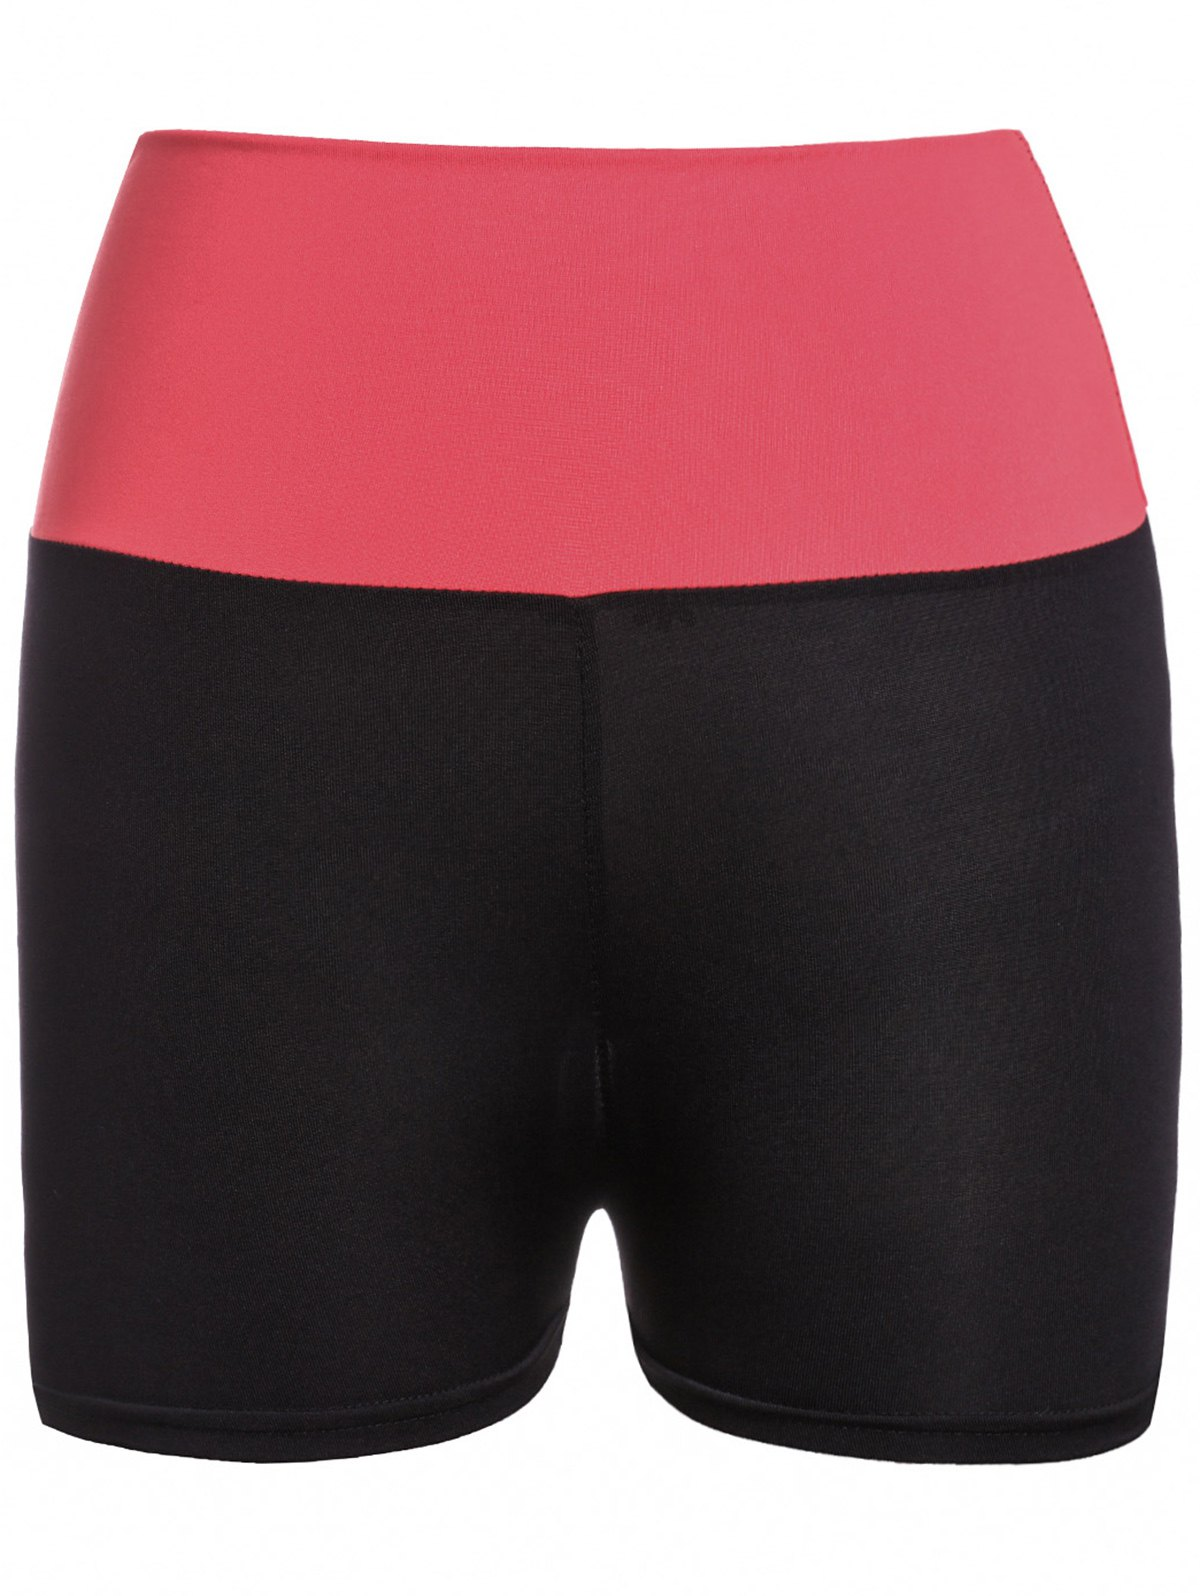 Active Style Elastic Waist Black Skinny Women's Yoga Shorts - RED ONE SIZE(FIT SIZE XS TO M)